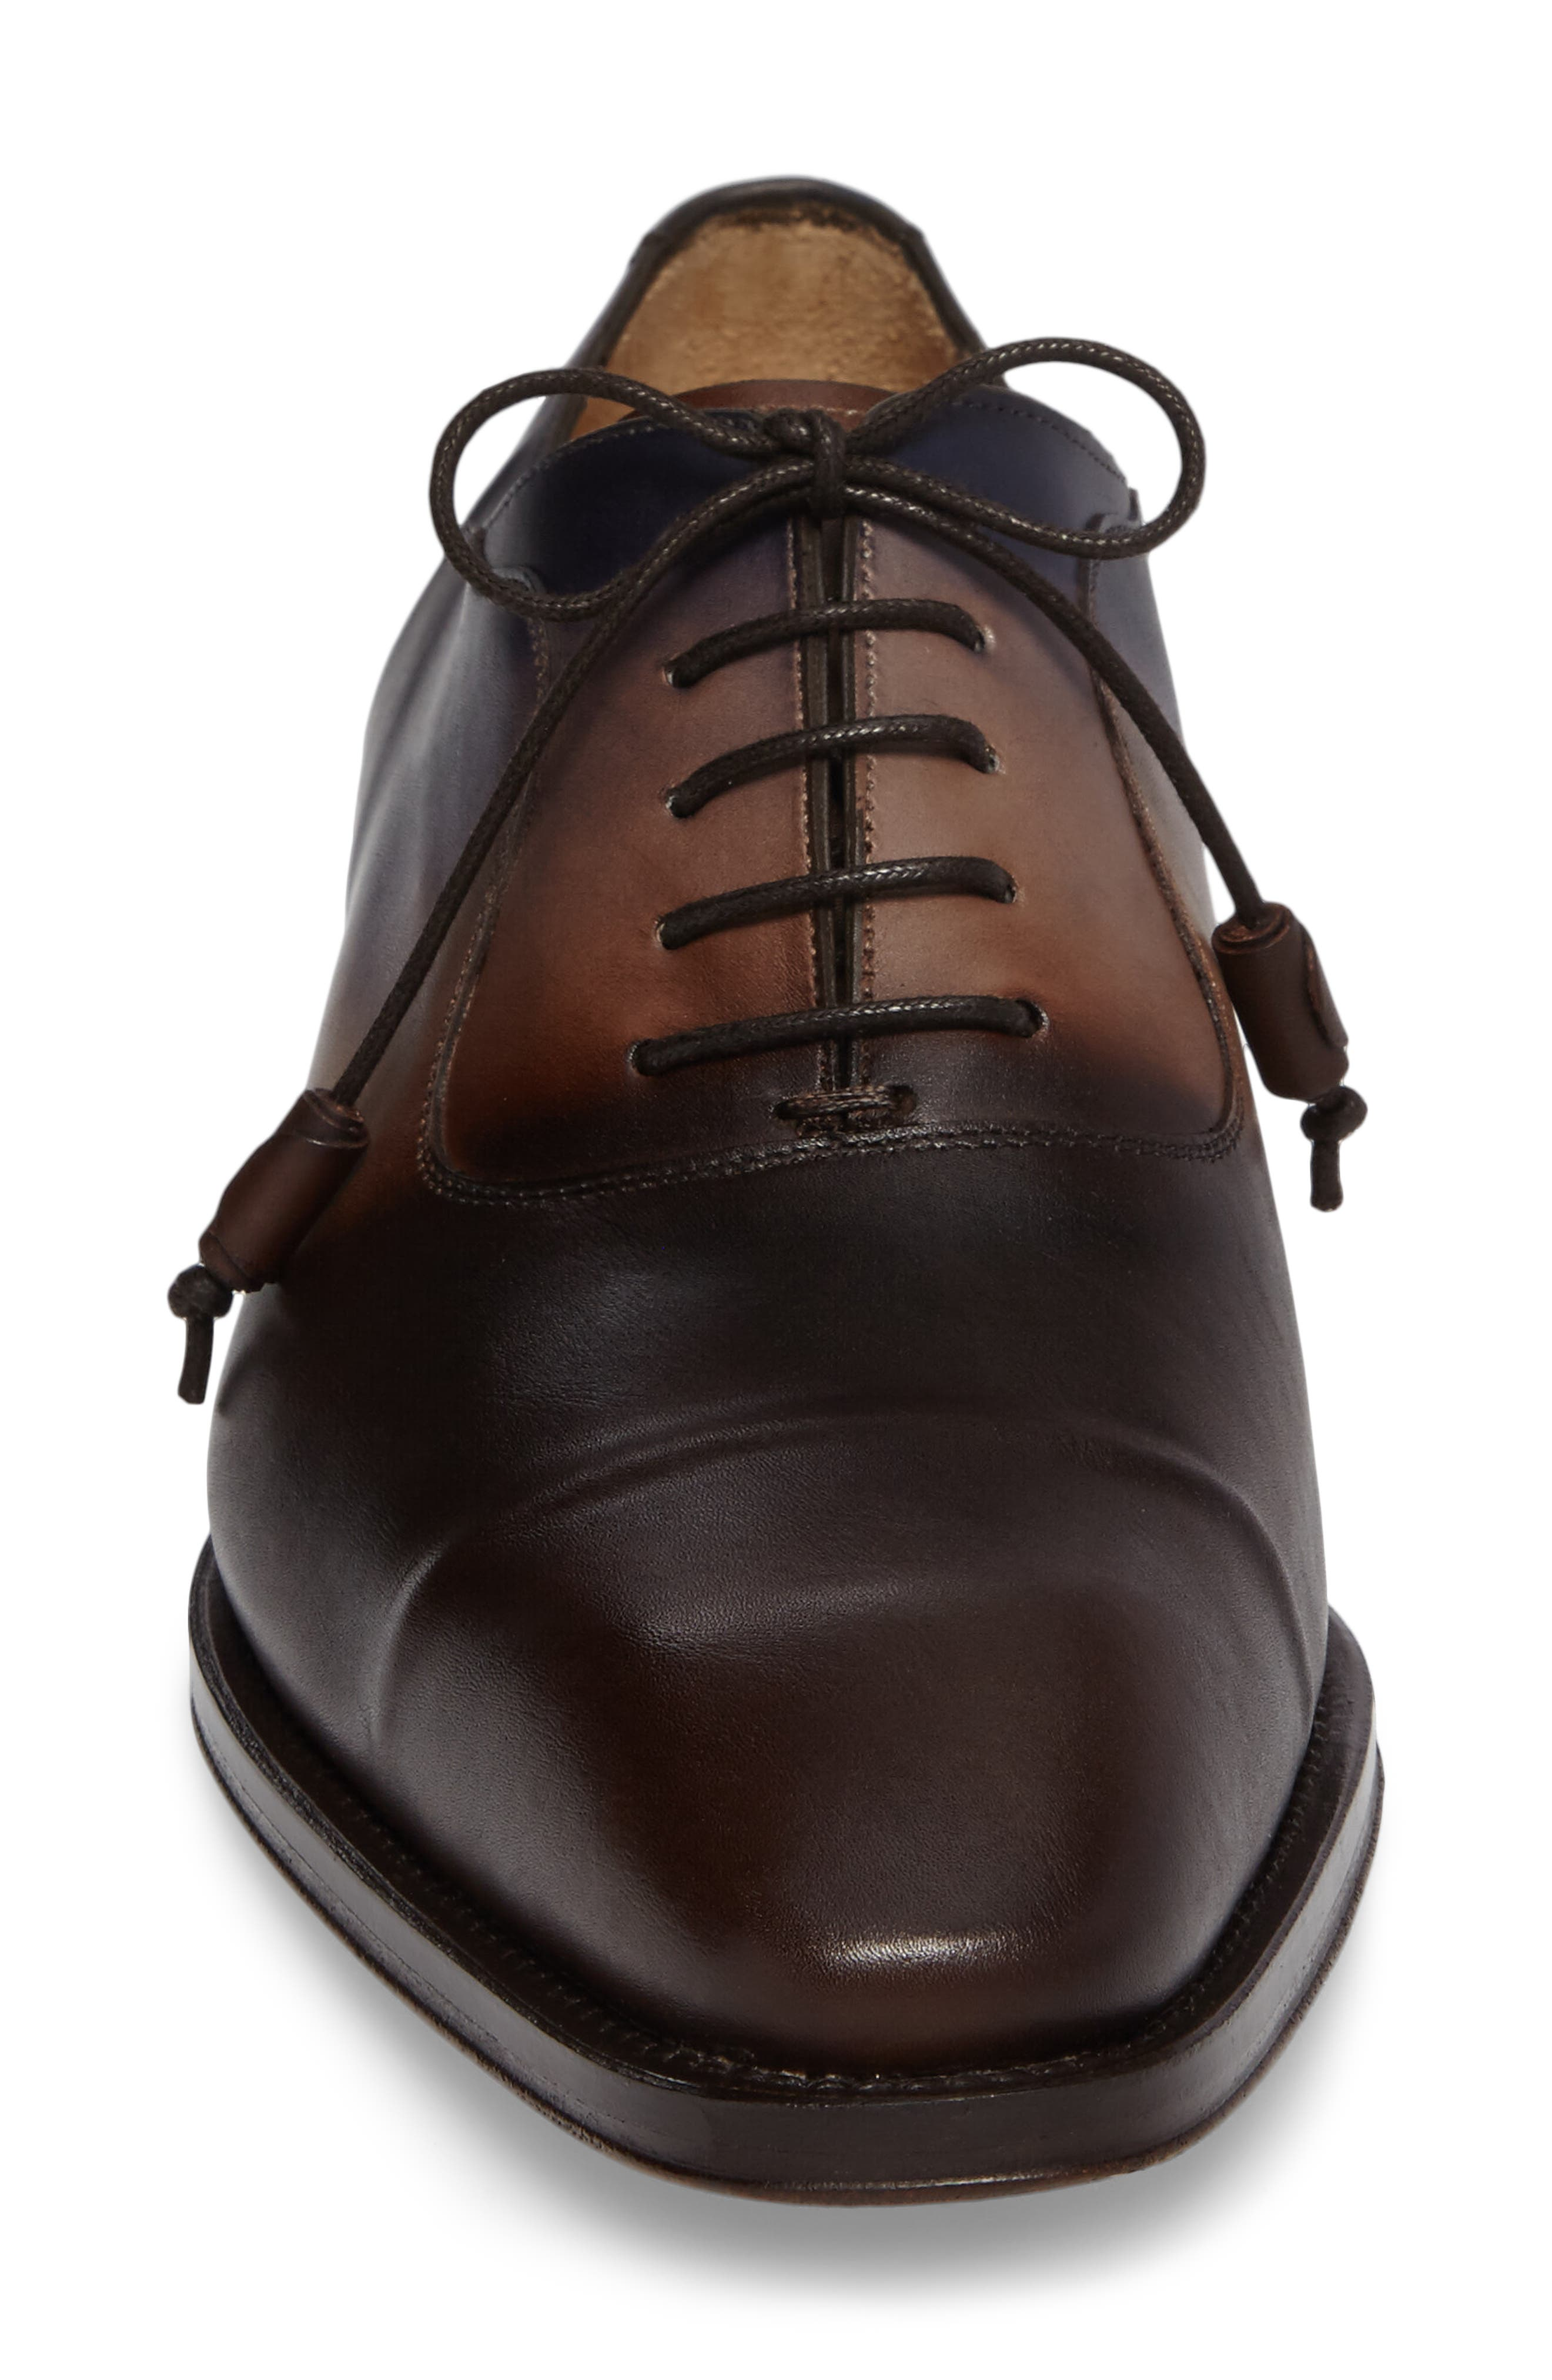 Millet Cap Toe Oxford,                             Alternate thumbnail 4, color,                             Brown Multi Leather